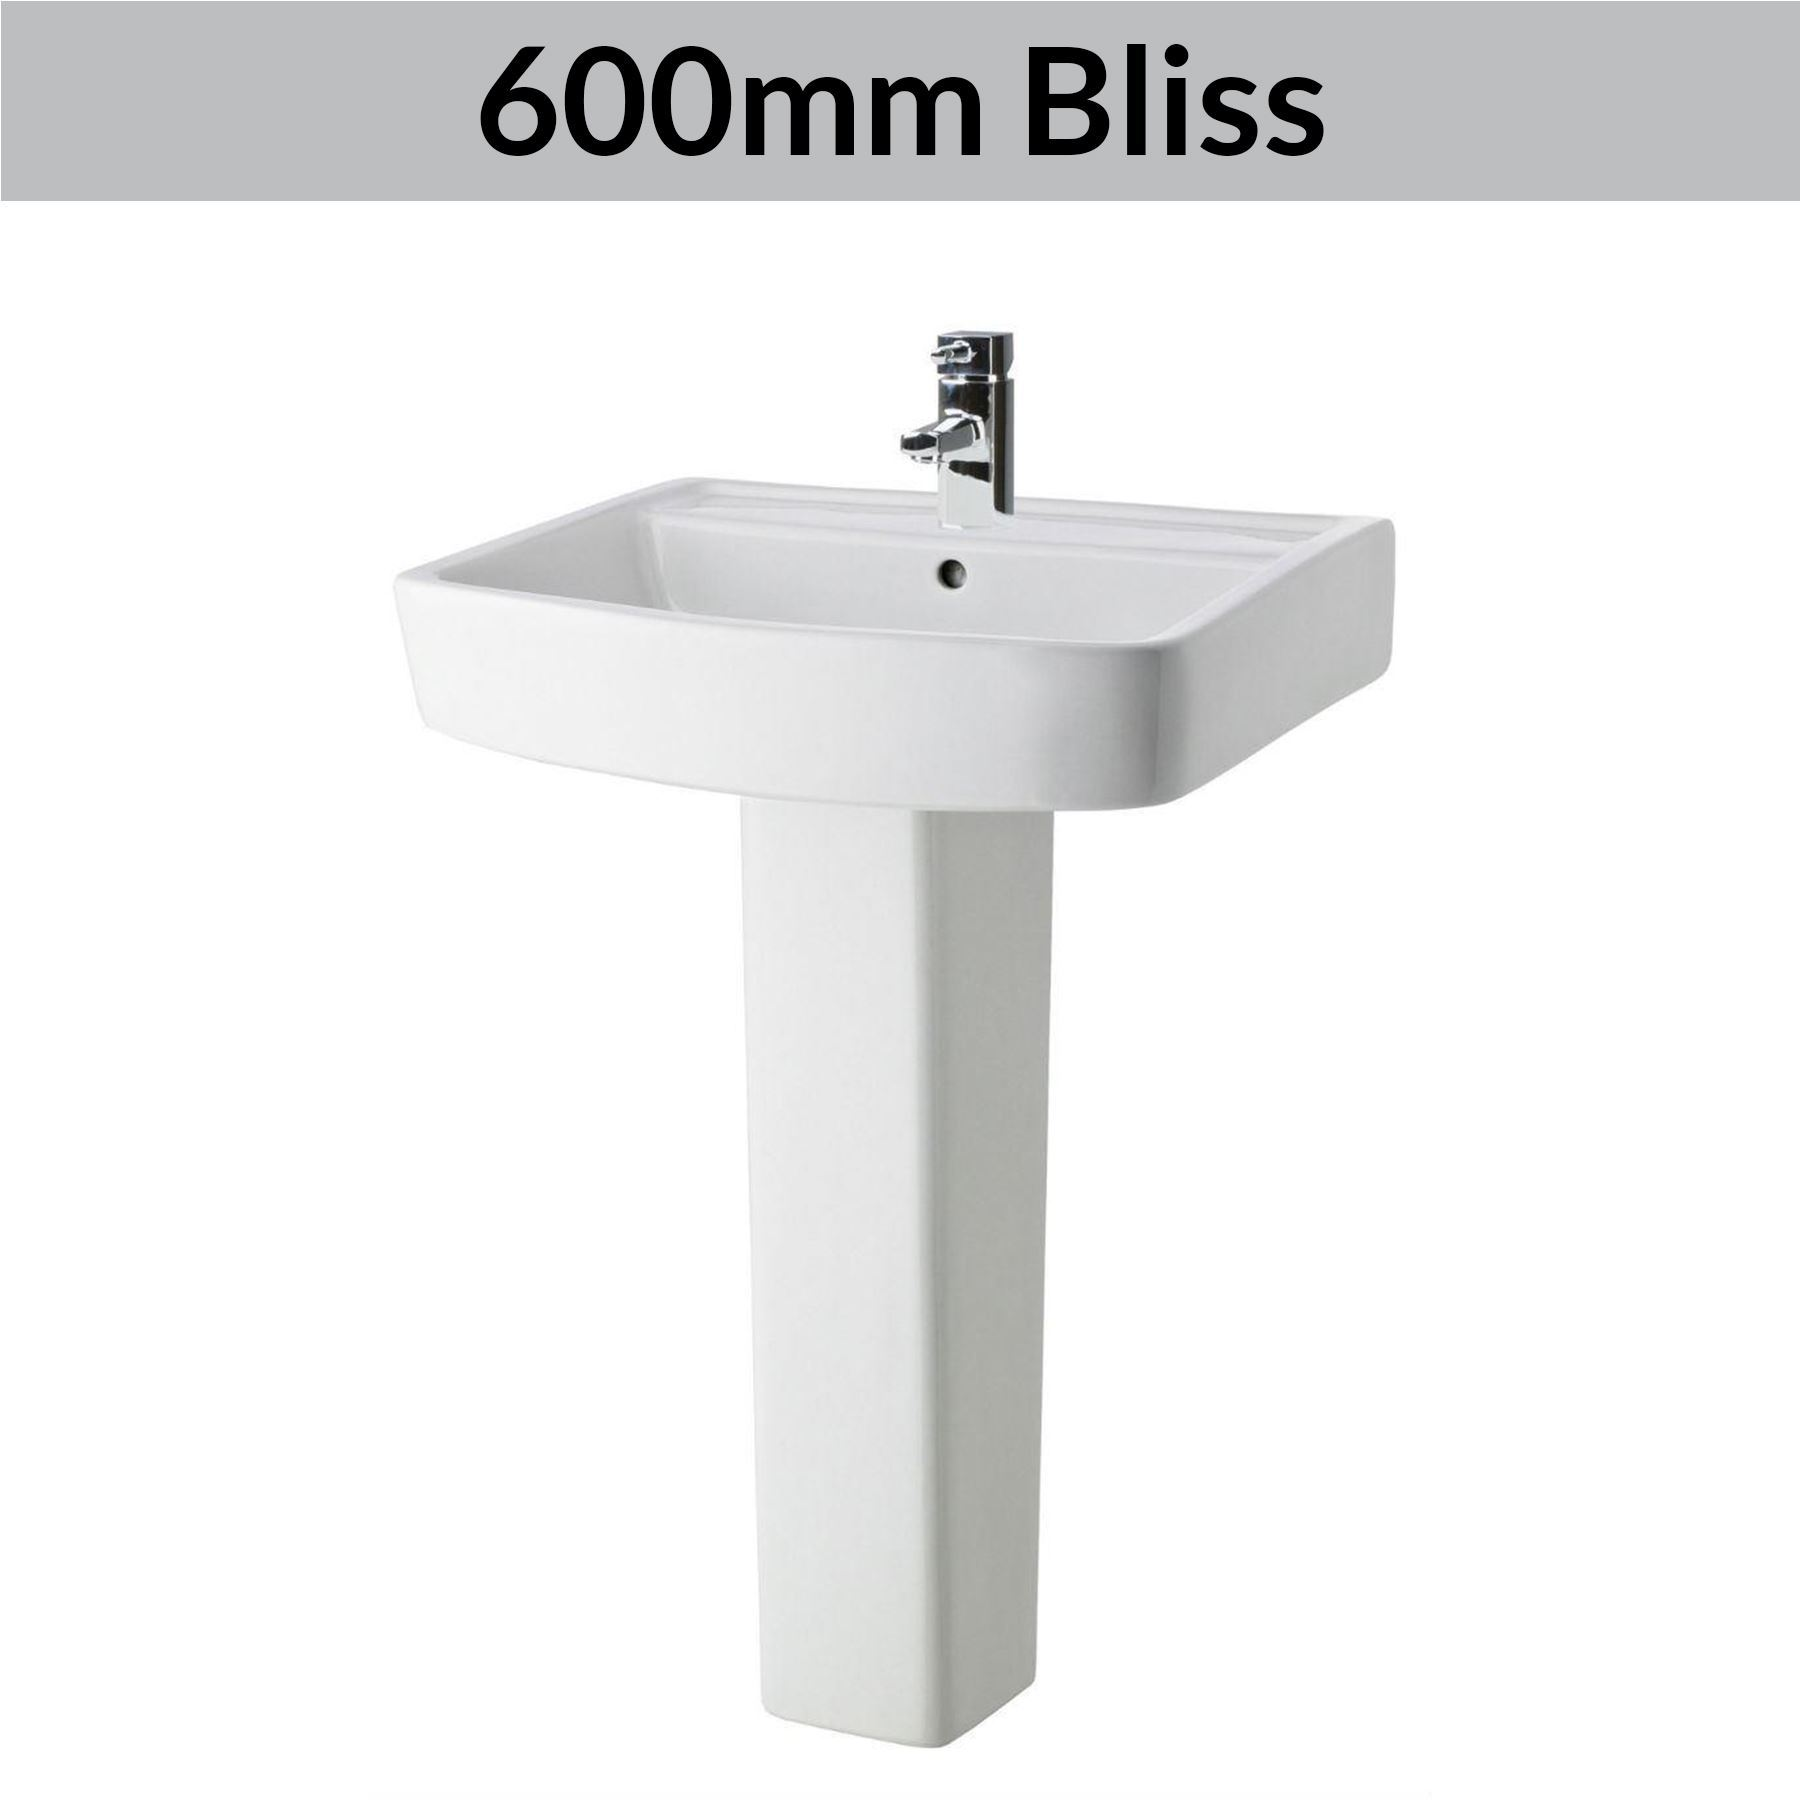 Modern Bathroom Basin Sinks Wash Full Pedestal Sink Ceramic Cloakroom Bowl White Ebay